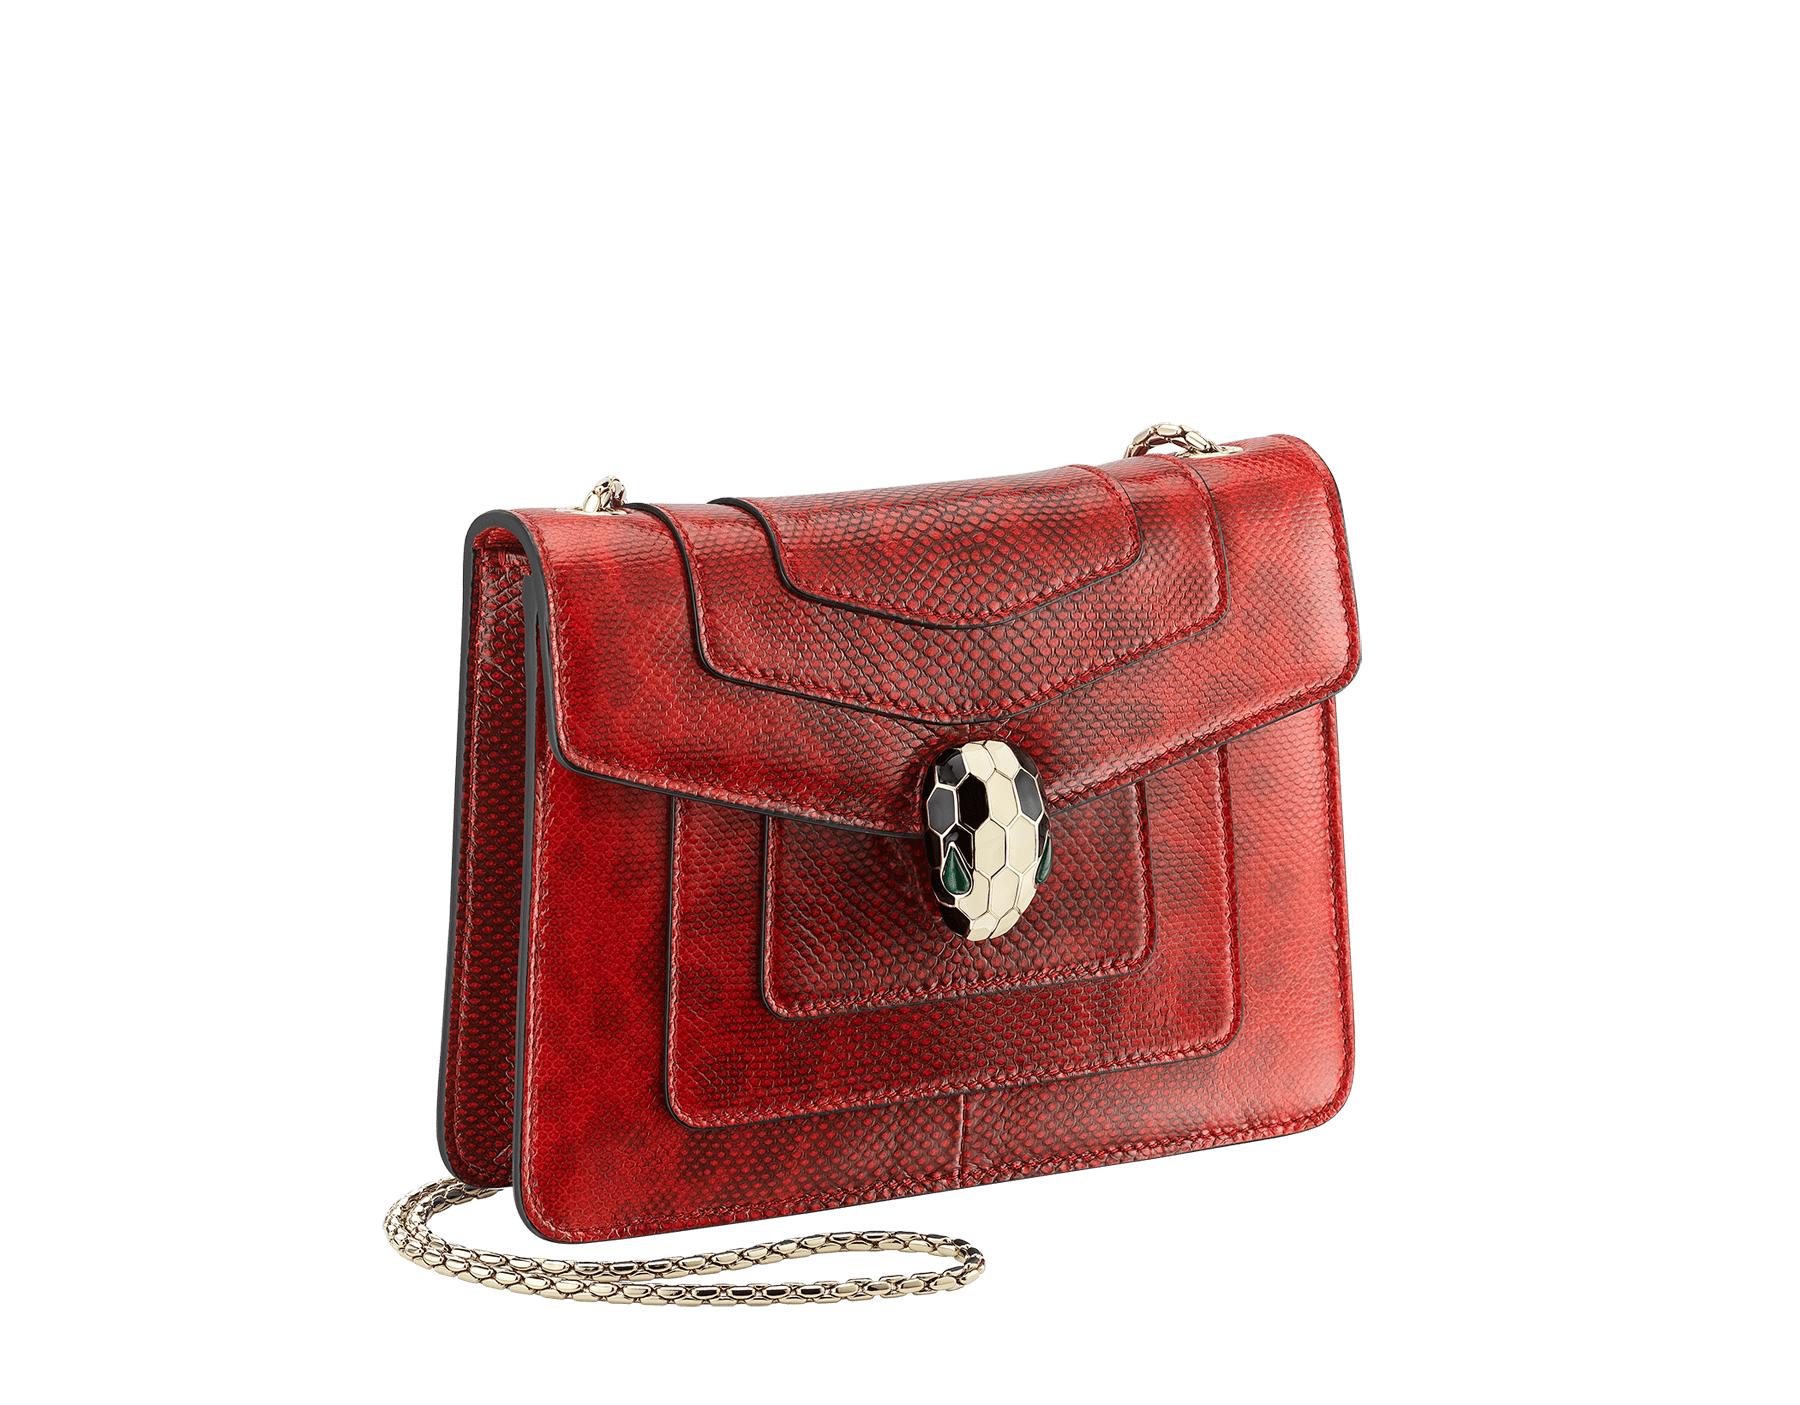 """Serpenti Forever "" crossbody bag in shiny carmine jasper karung skin. Iconic snakehead closure in light gold plated brass enriched with black and white enamel and green malachite eyes 287104 image 2"